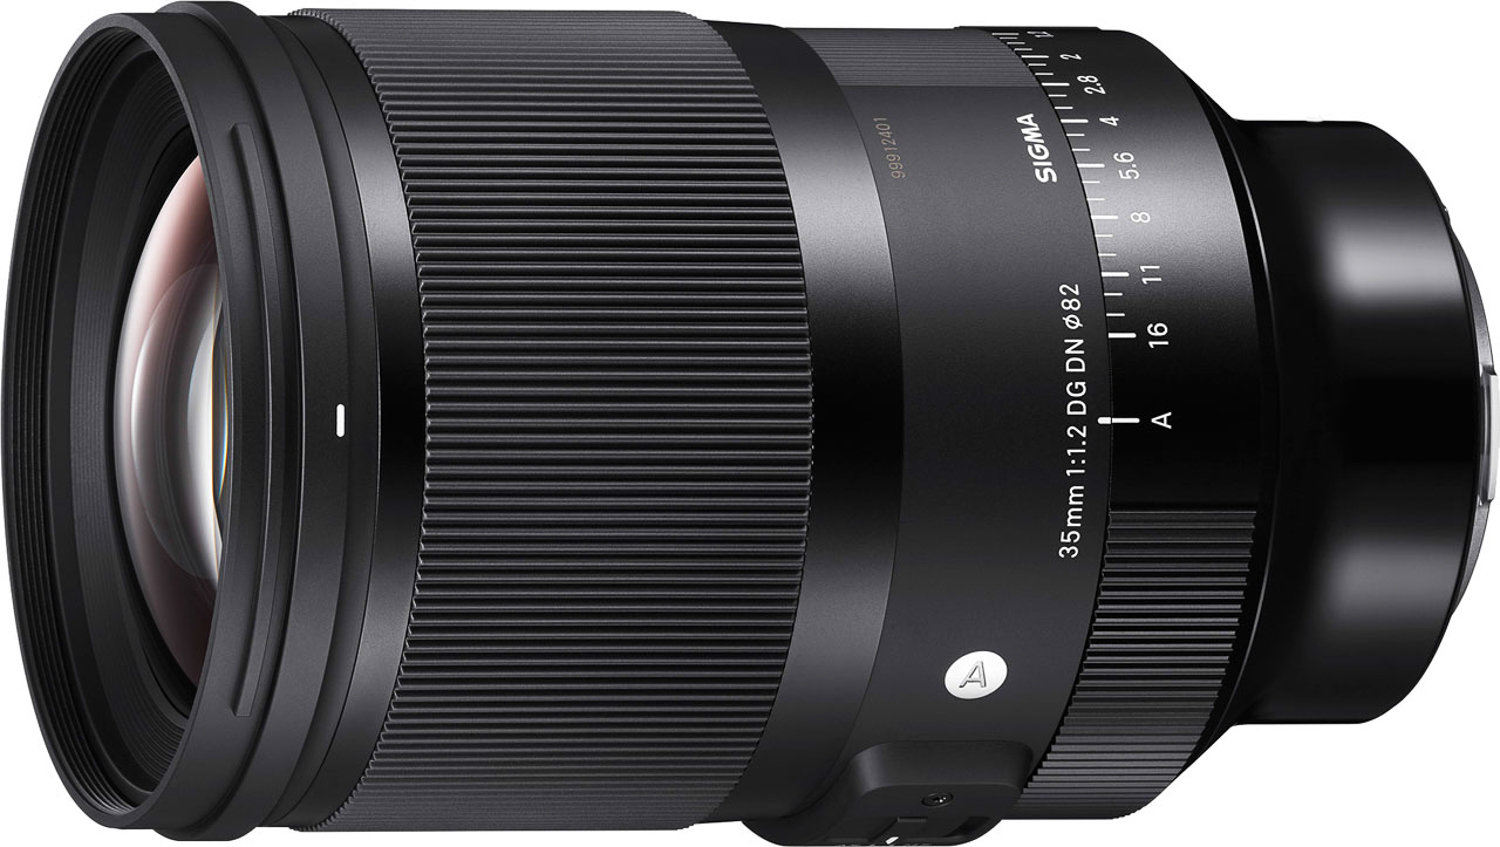 Sigma-35mm-f1.2-ART-lens-review